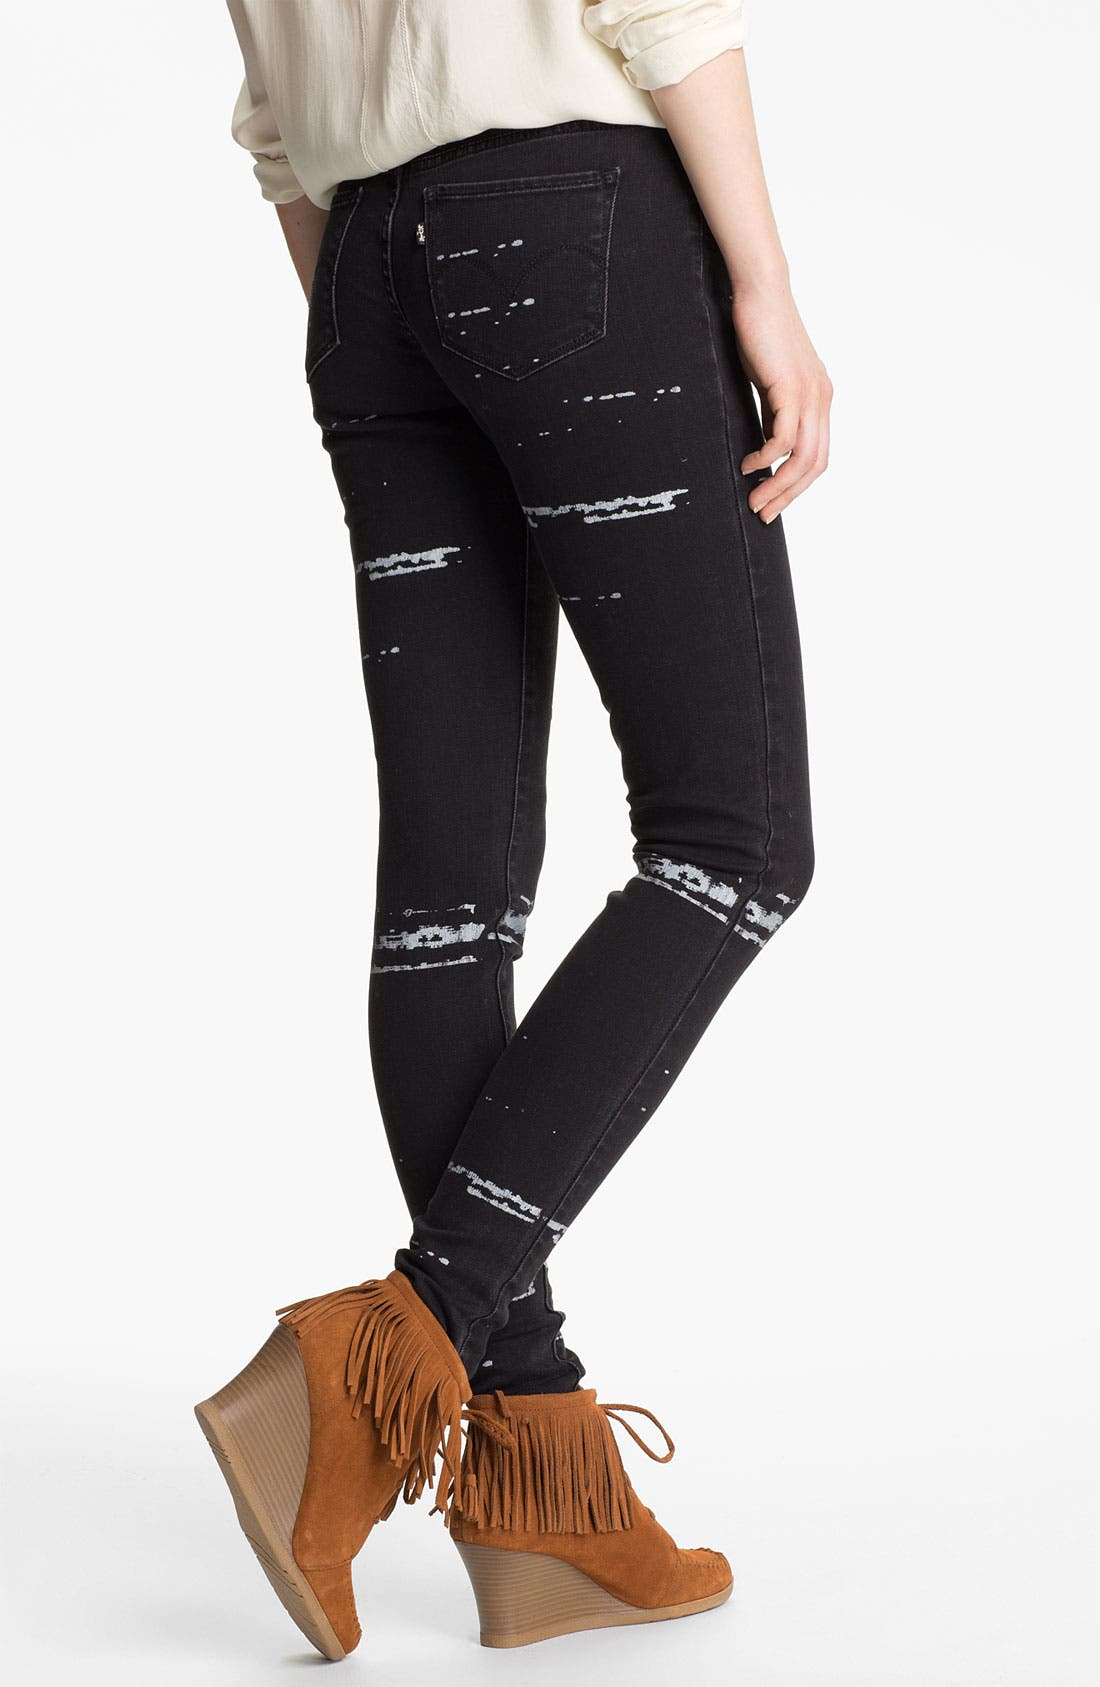 Alternate Image 1 Selected - Levi's® 'The Legging' Print Skinny Jeans